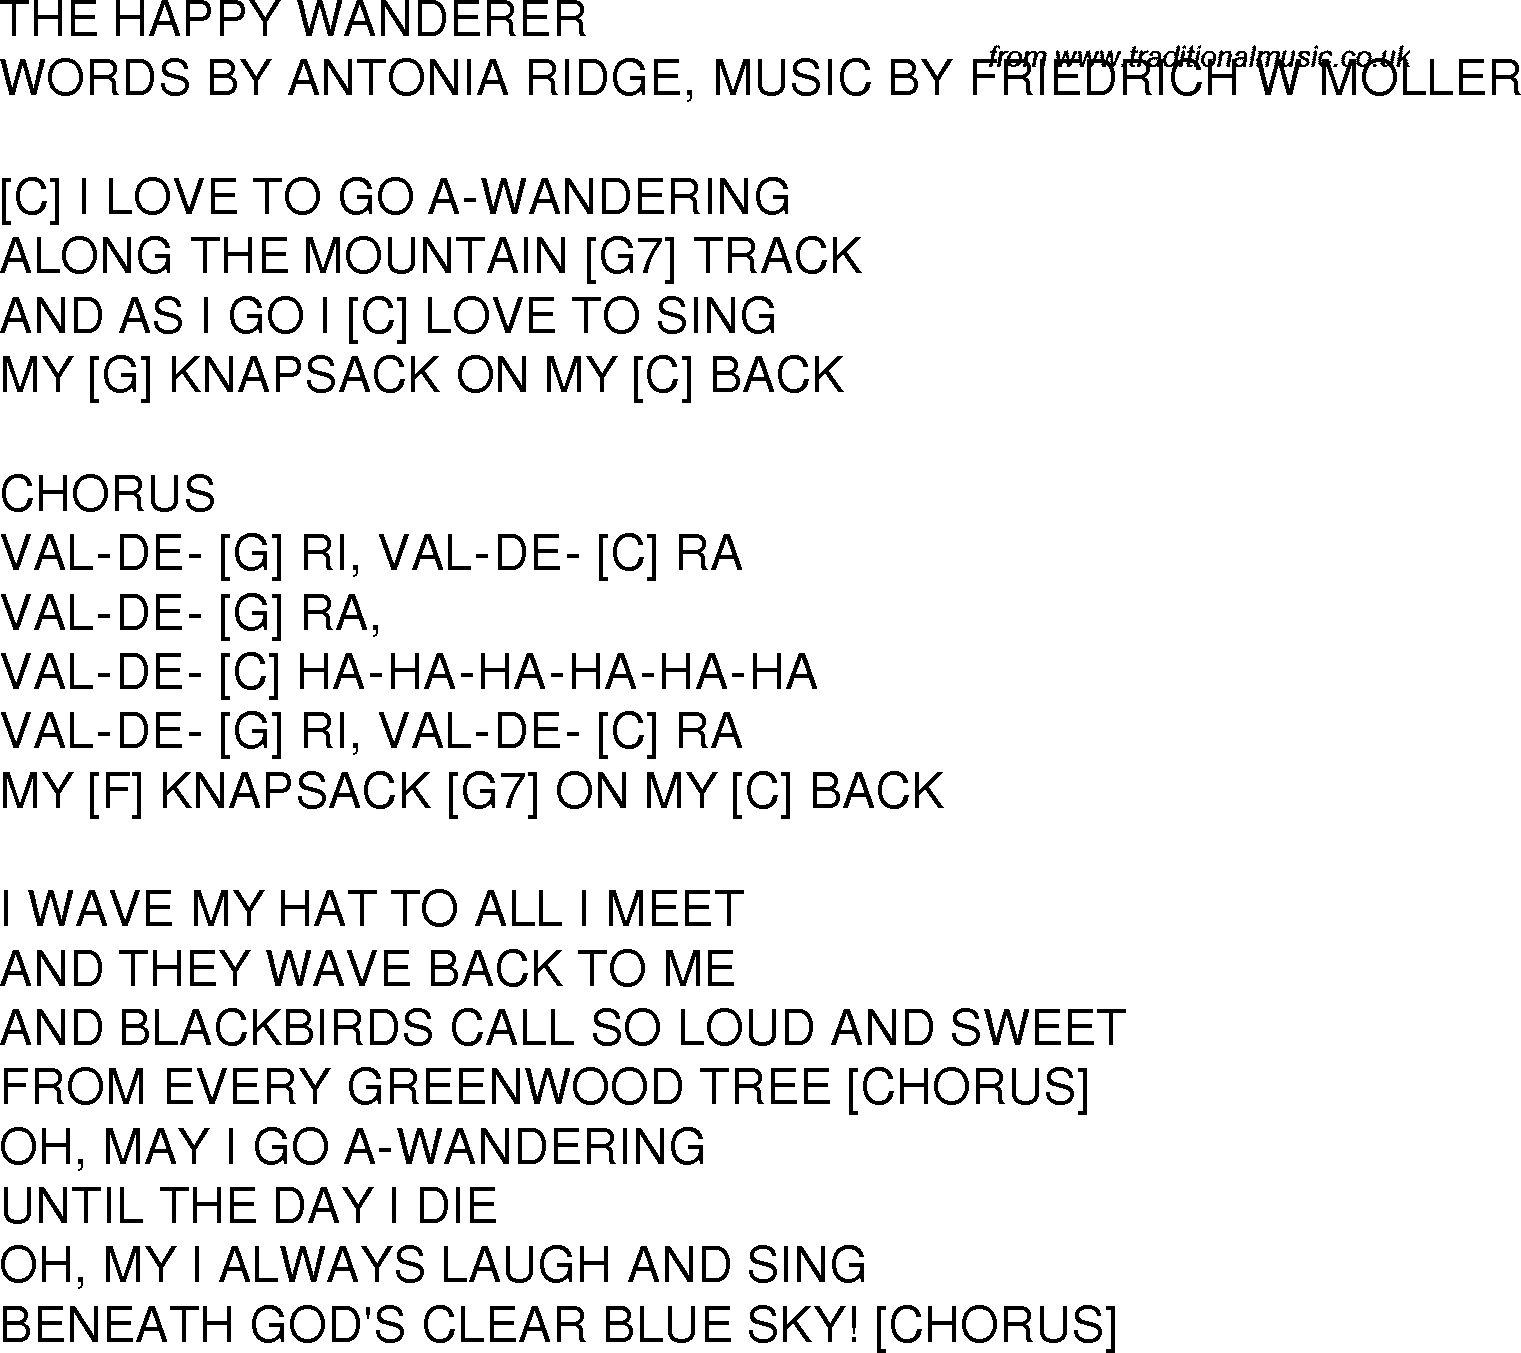 Old time song lyrics with guitar chords for The Happy Wanderer C